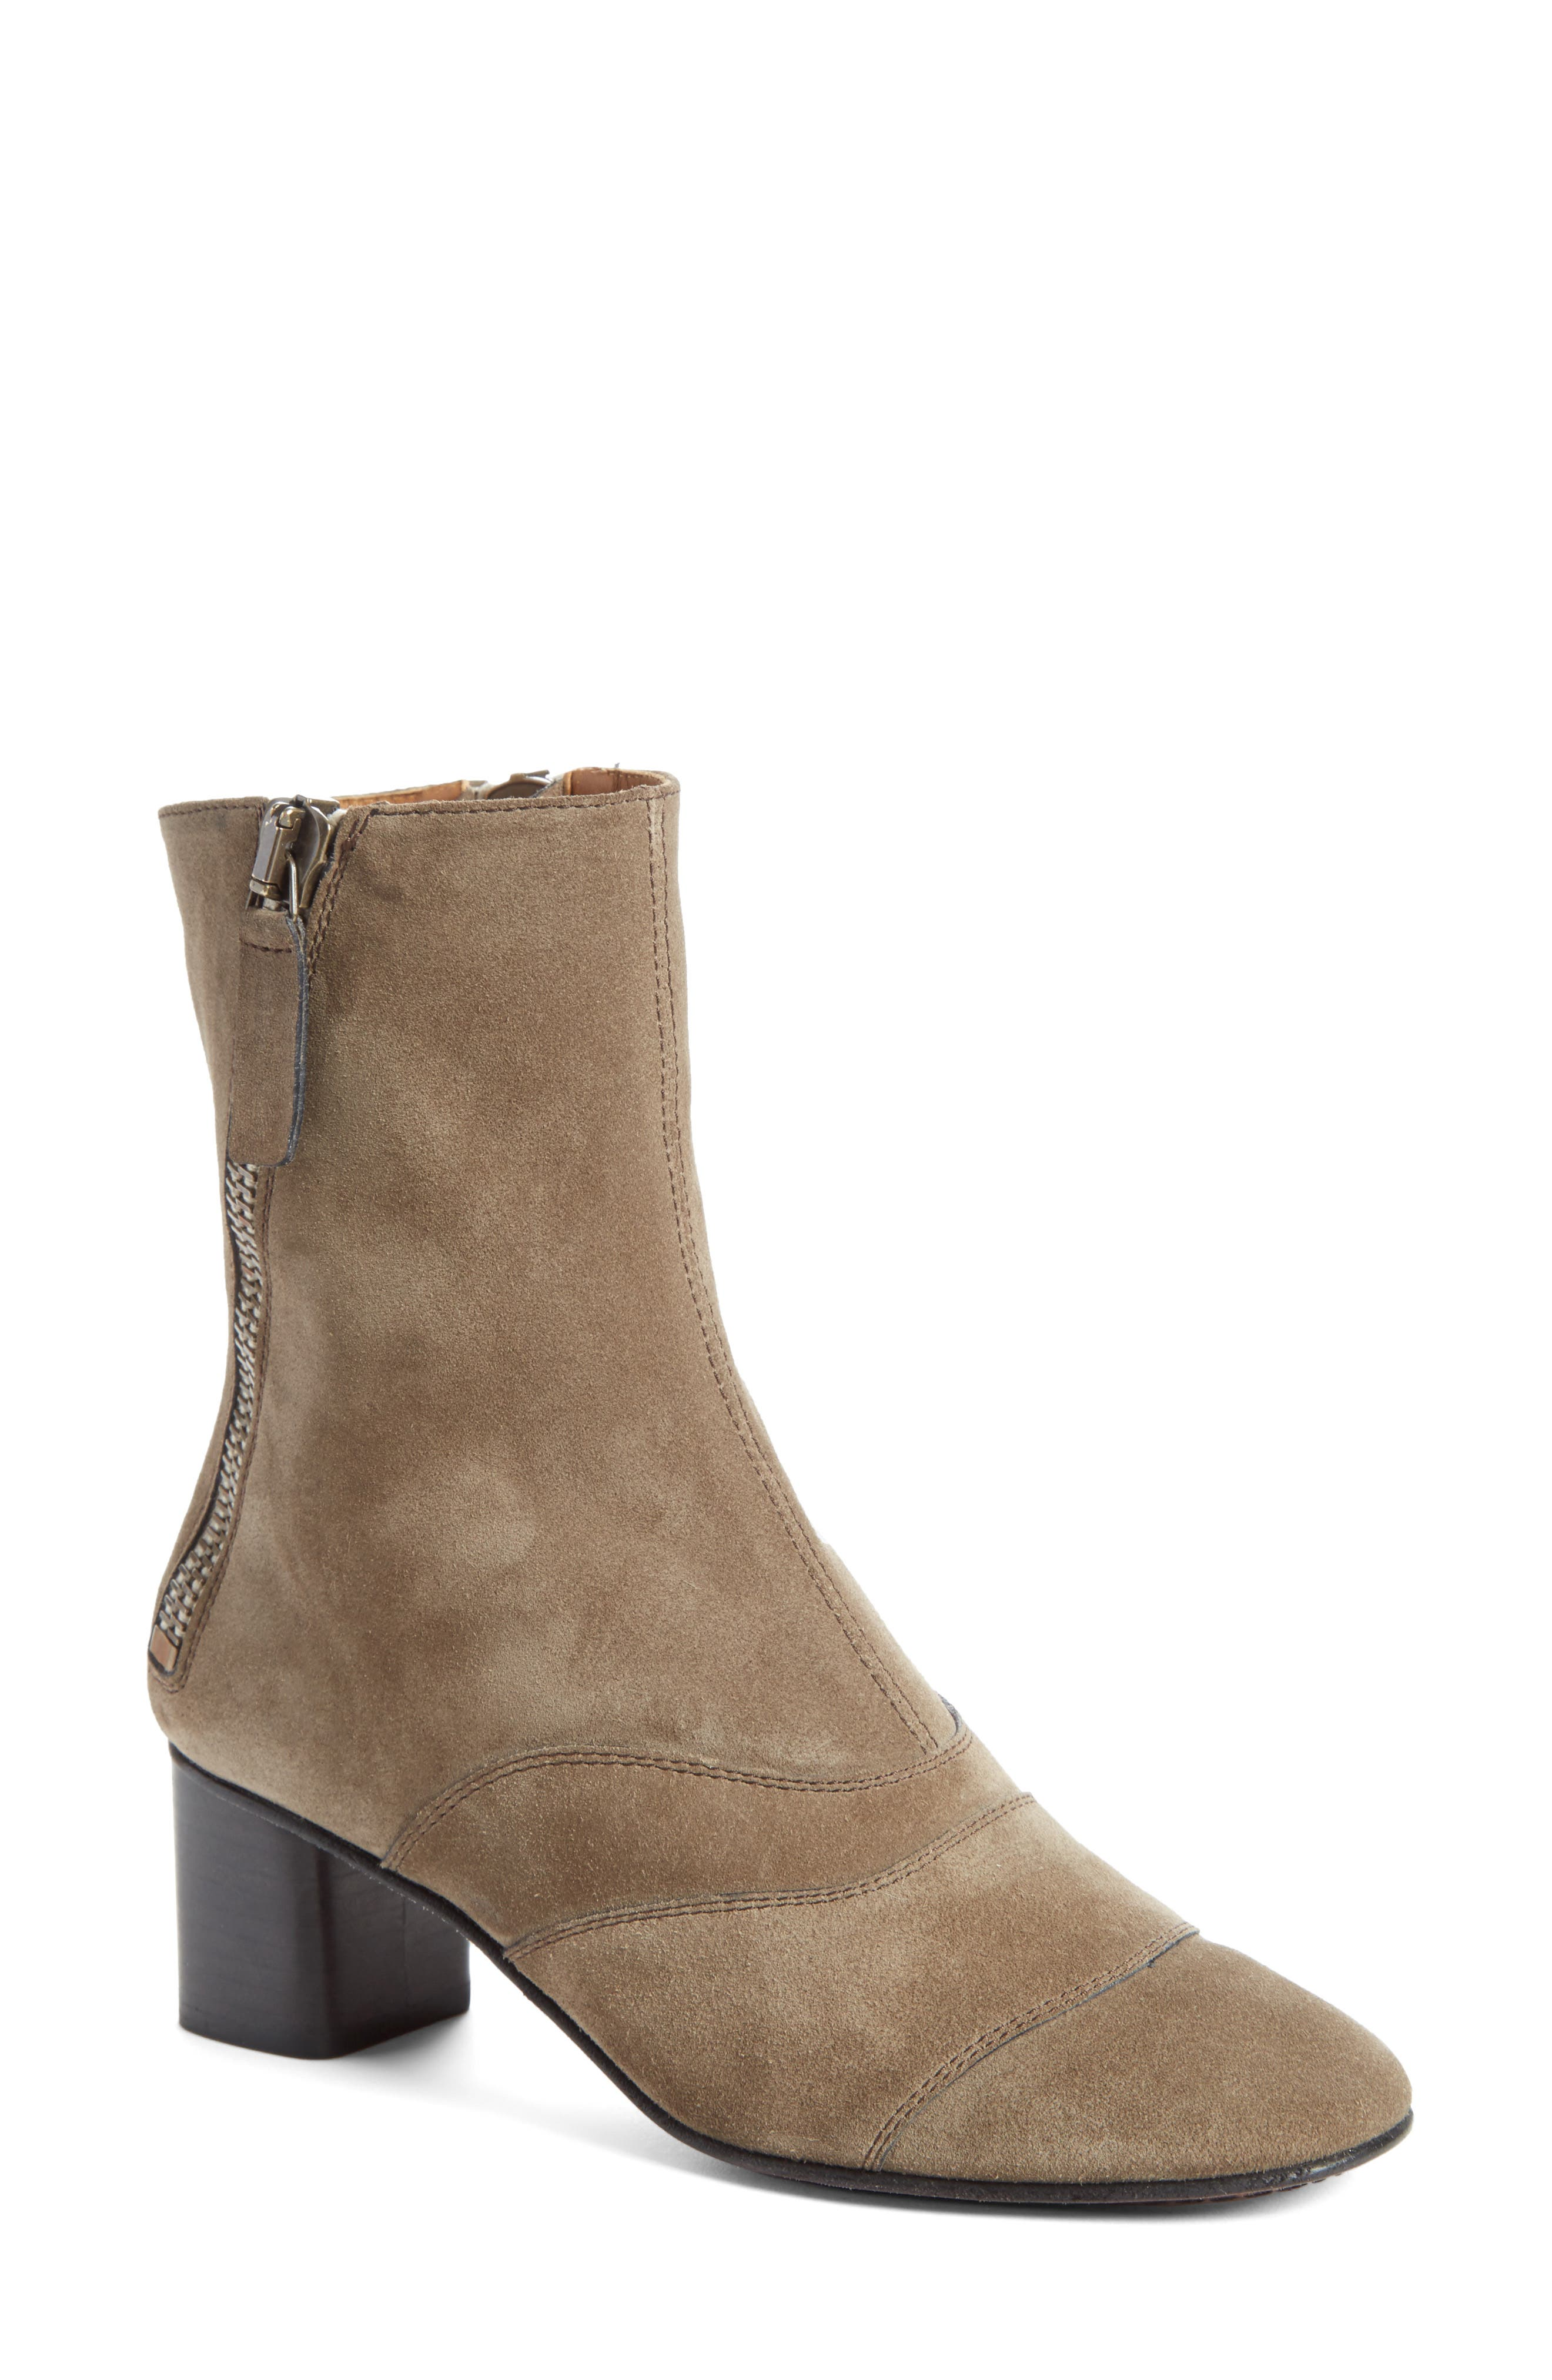 Lexie Block Heel Boot,                         Main,                         color, 021